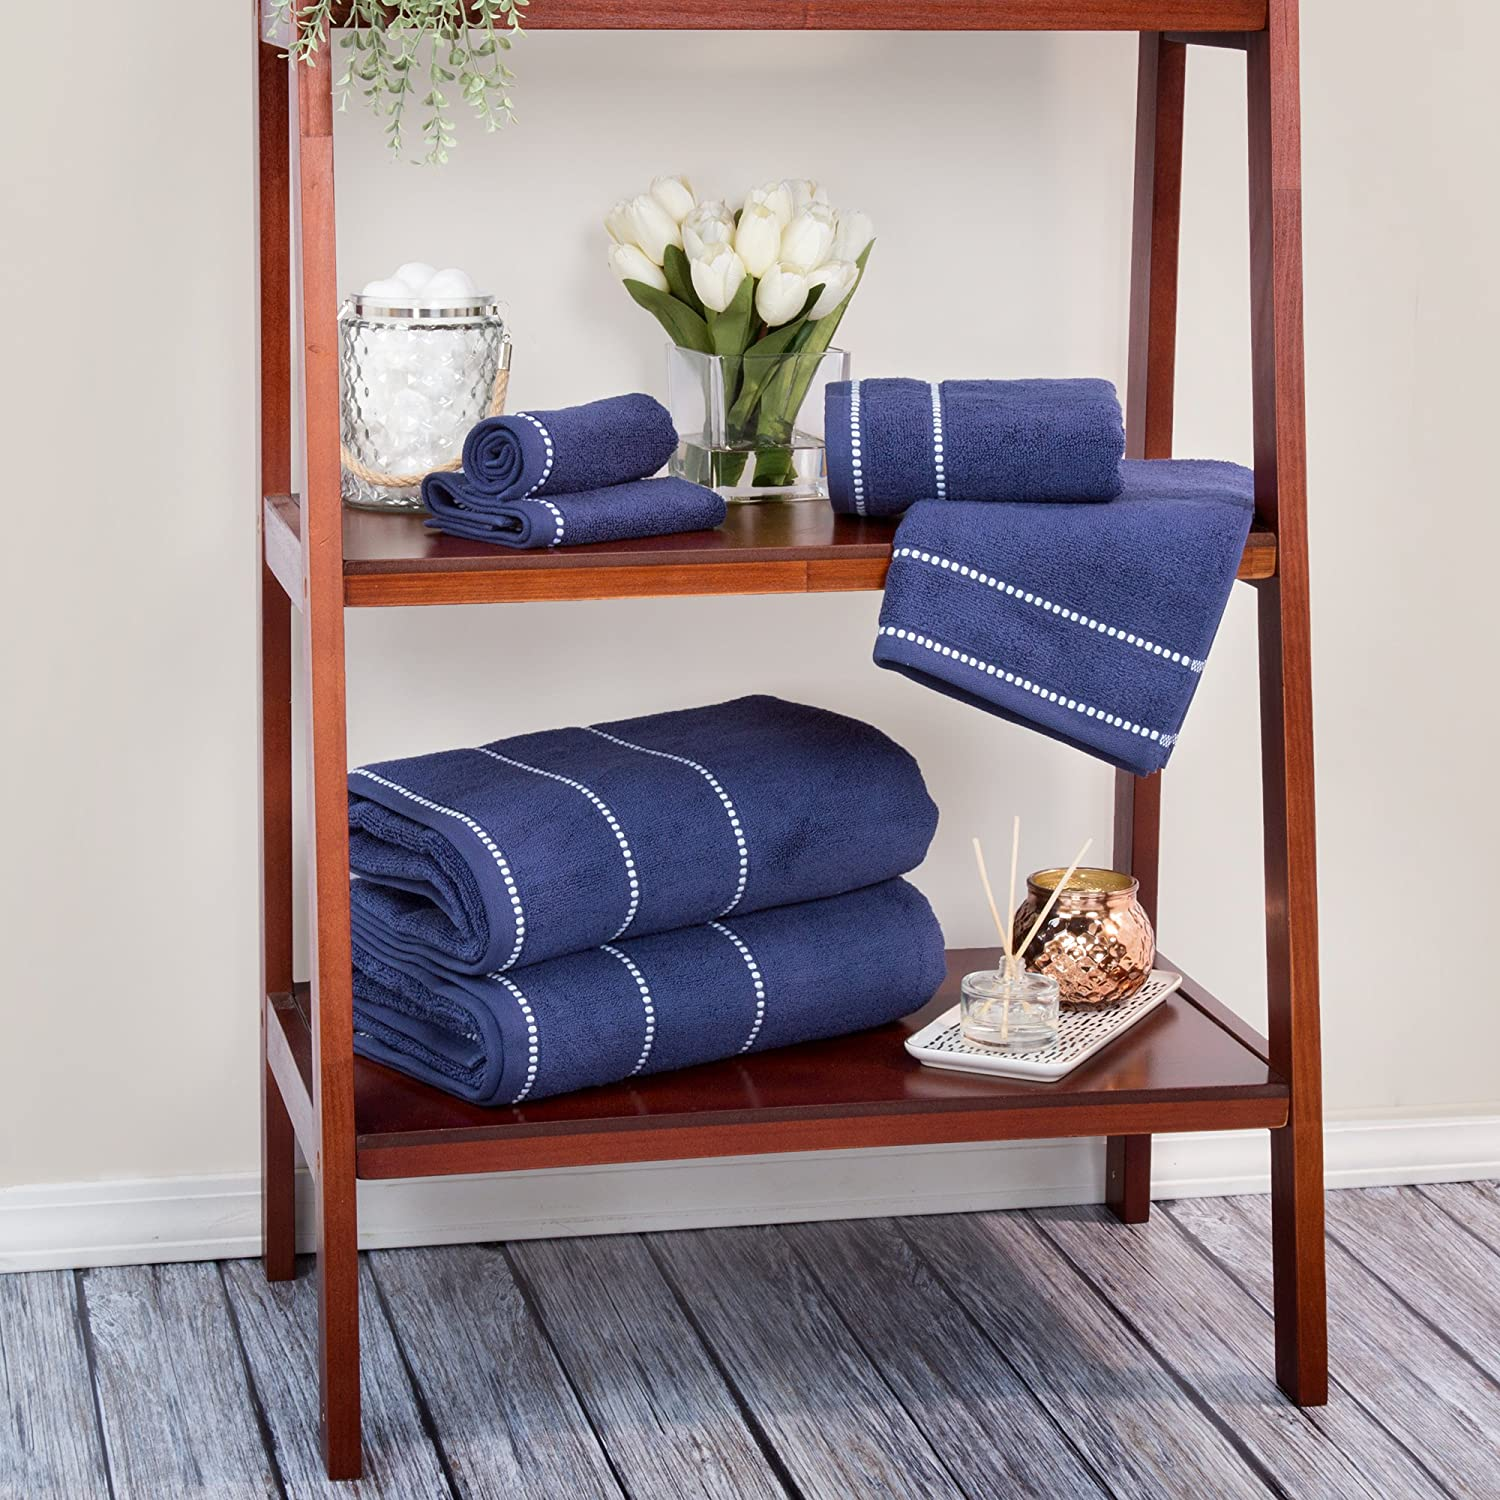 Luxury Cotton Towel Set- Quick Dry, Zero Twist and Soft 6 Piece Set With 2 Bath Towels, 2 Hand Towels and 2 Washcloths By Lavish Home (Navy / White)